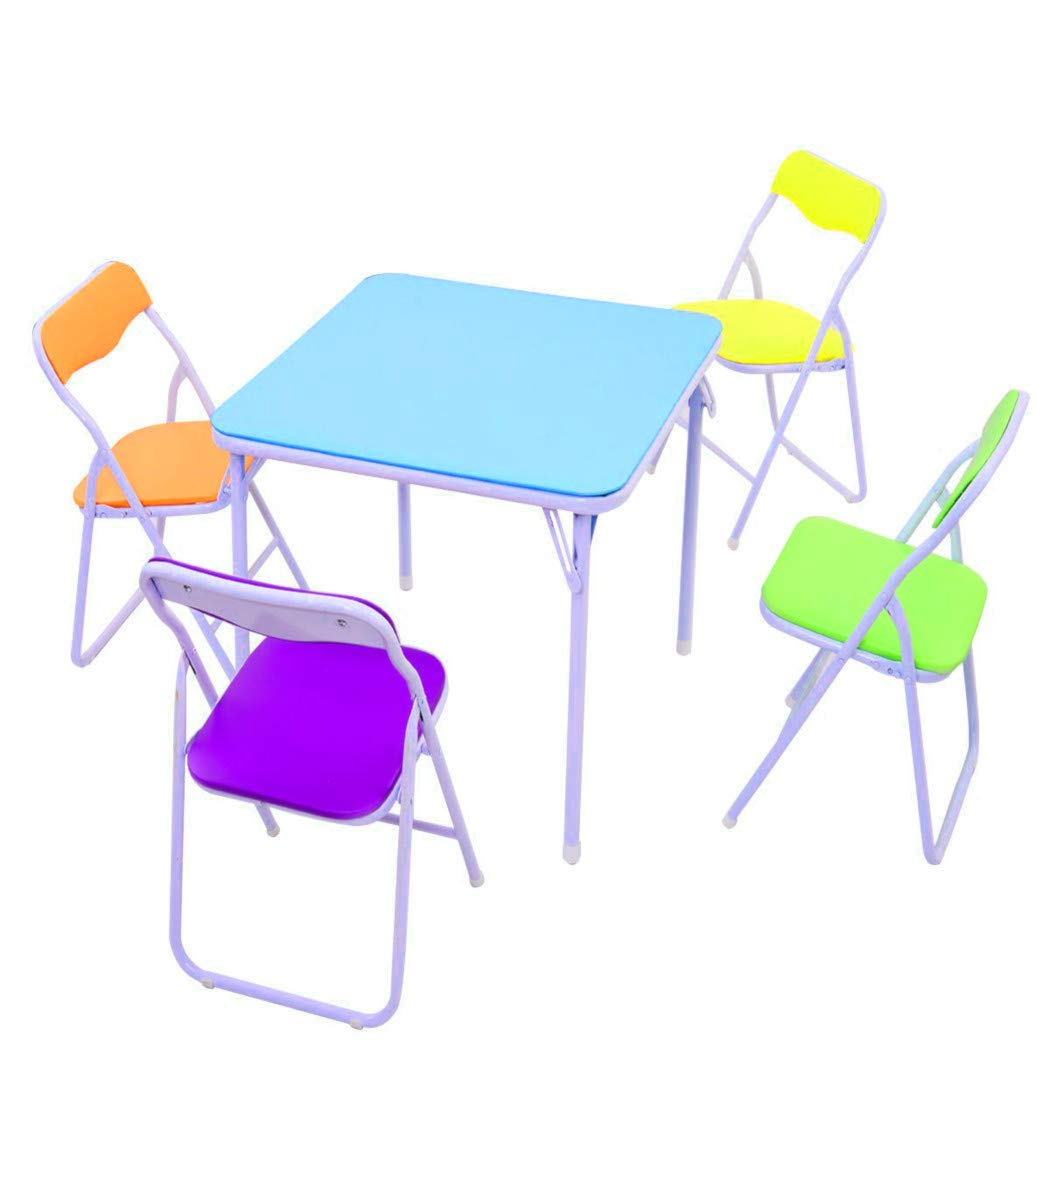 STS SUPPLIES LTD Kids Dinette Set Folding Table Chair for Art Study Dinner Wooden Games Decor Small Kitchen Play Room Classic Desk & Ebook by AllTim3Shopping.